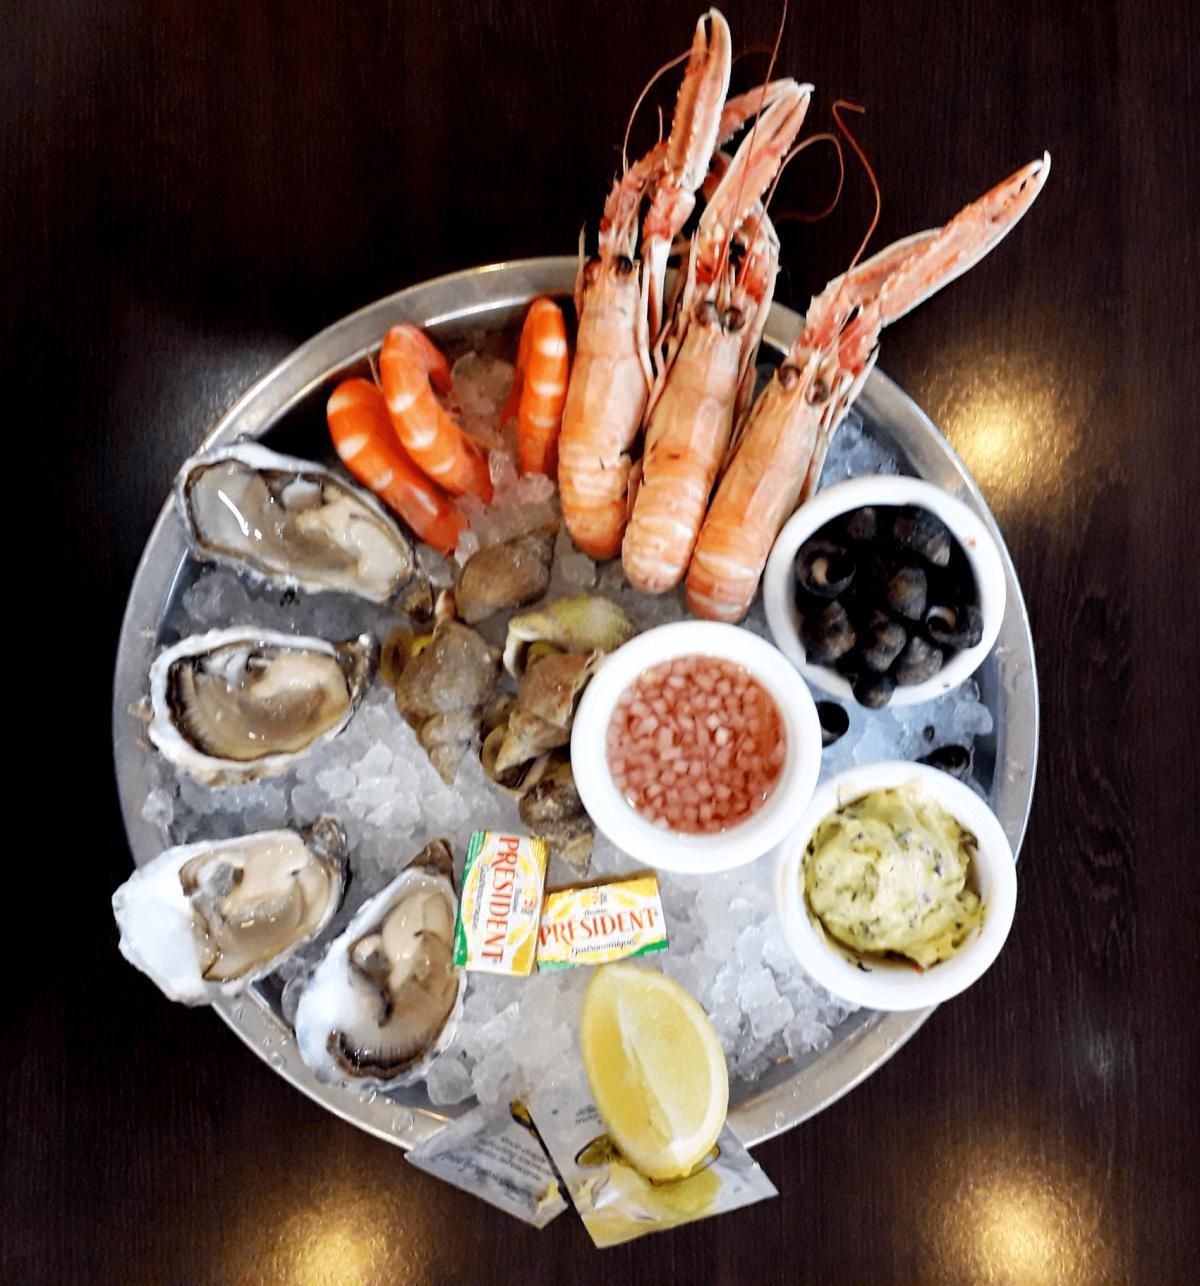 Fisherman's tray